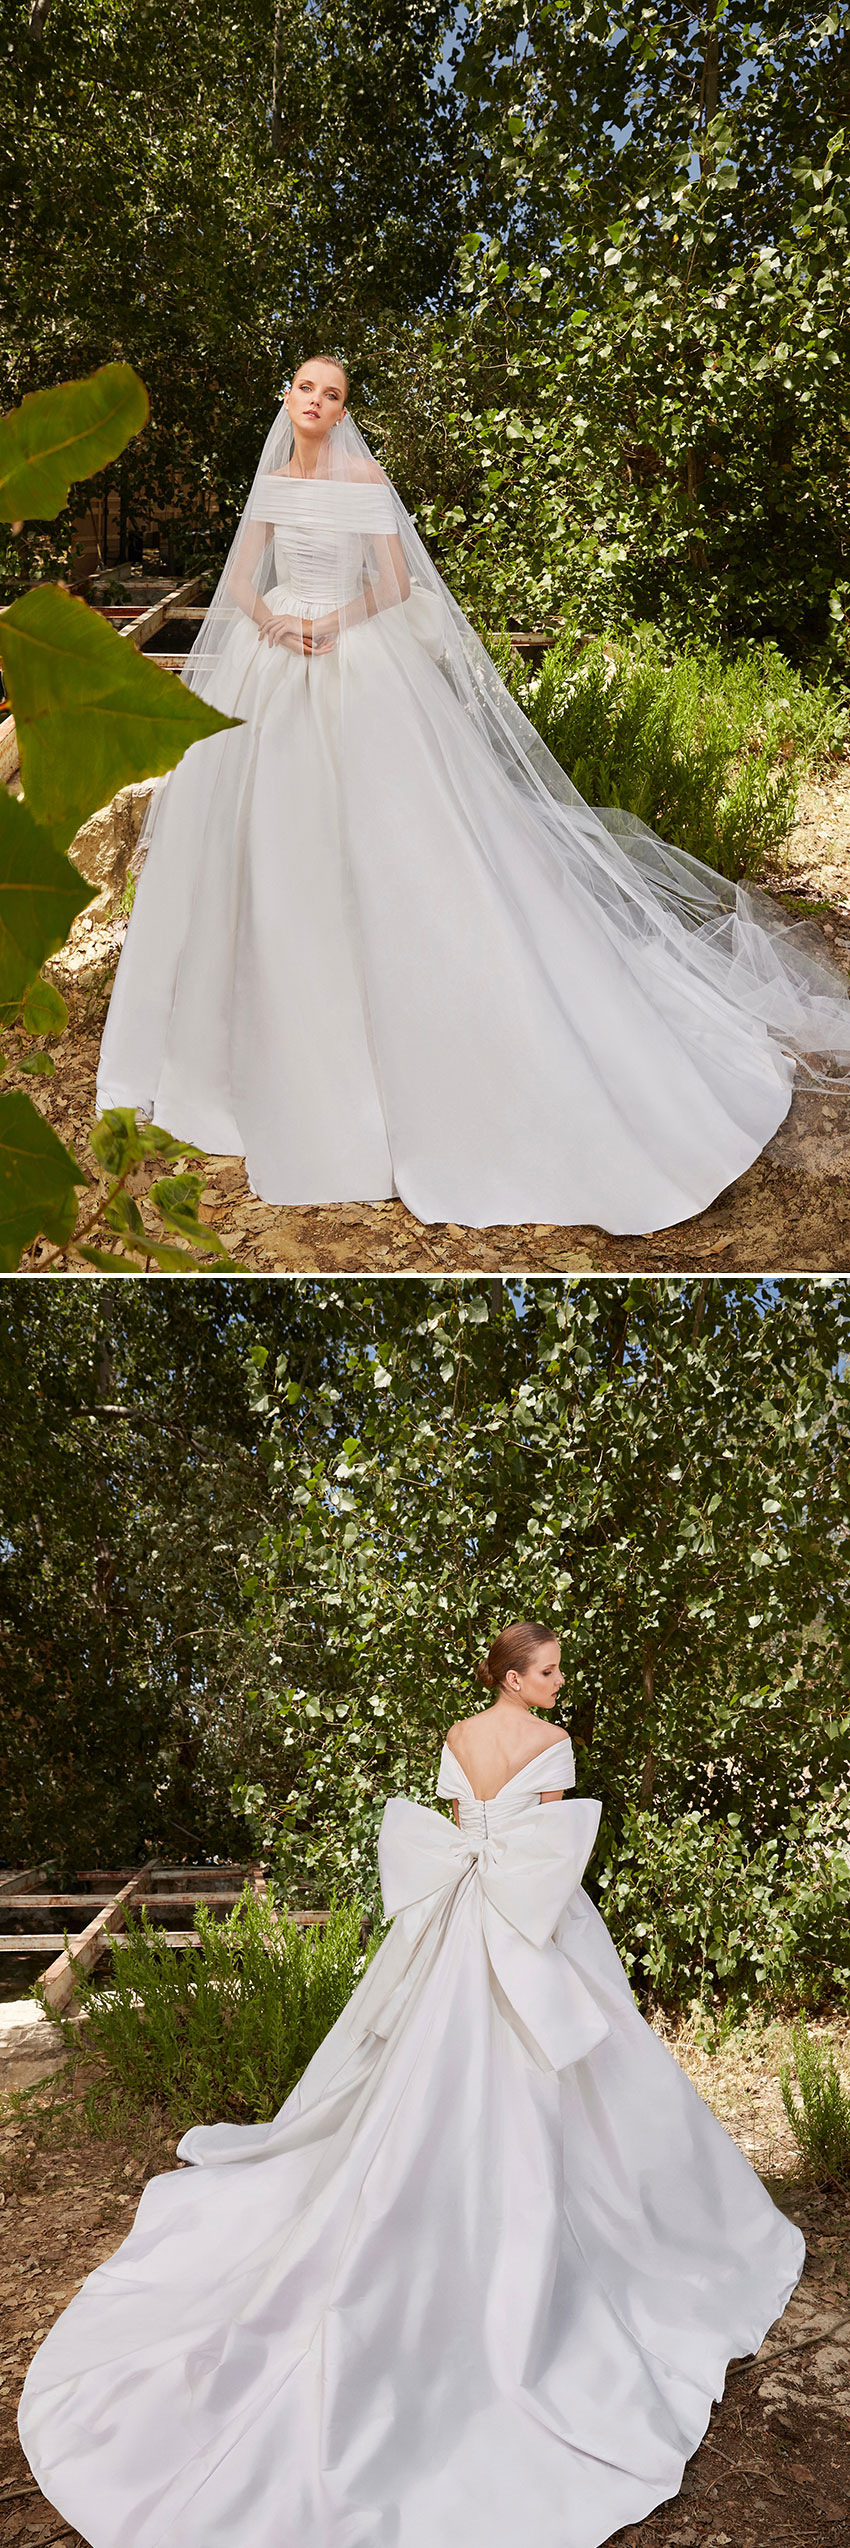 Radiant Muse is the Spring 2021 bridal collection of lebanese fashion designer Elie Saab as featured in Perfect Wedding Magazine